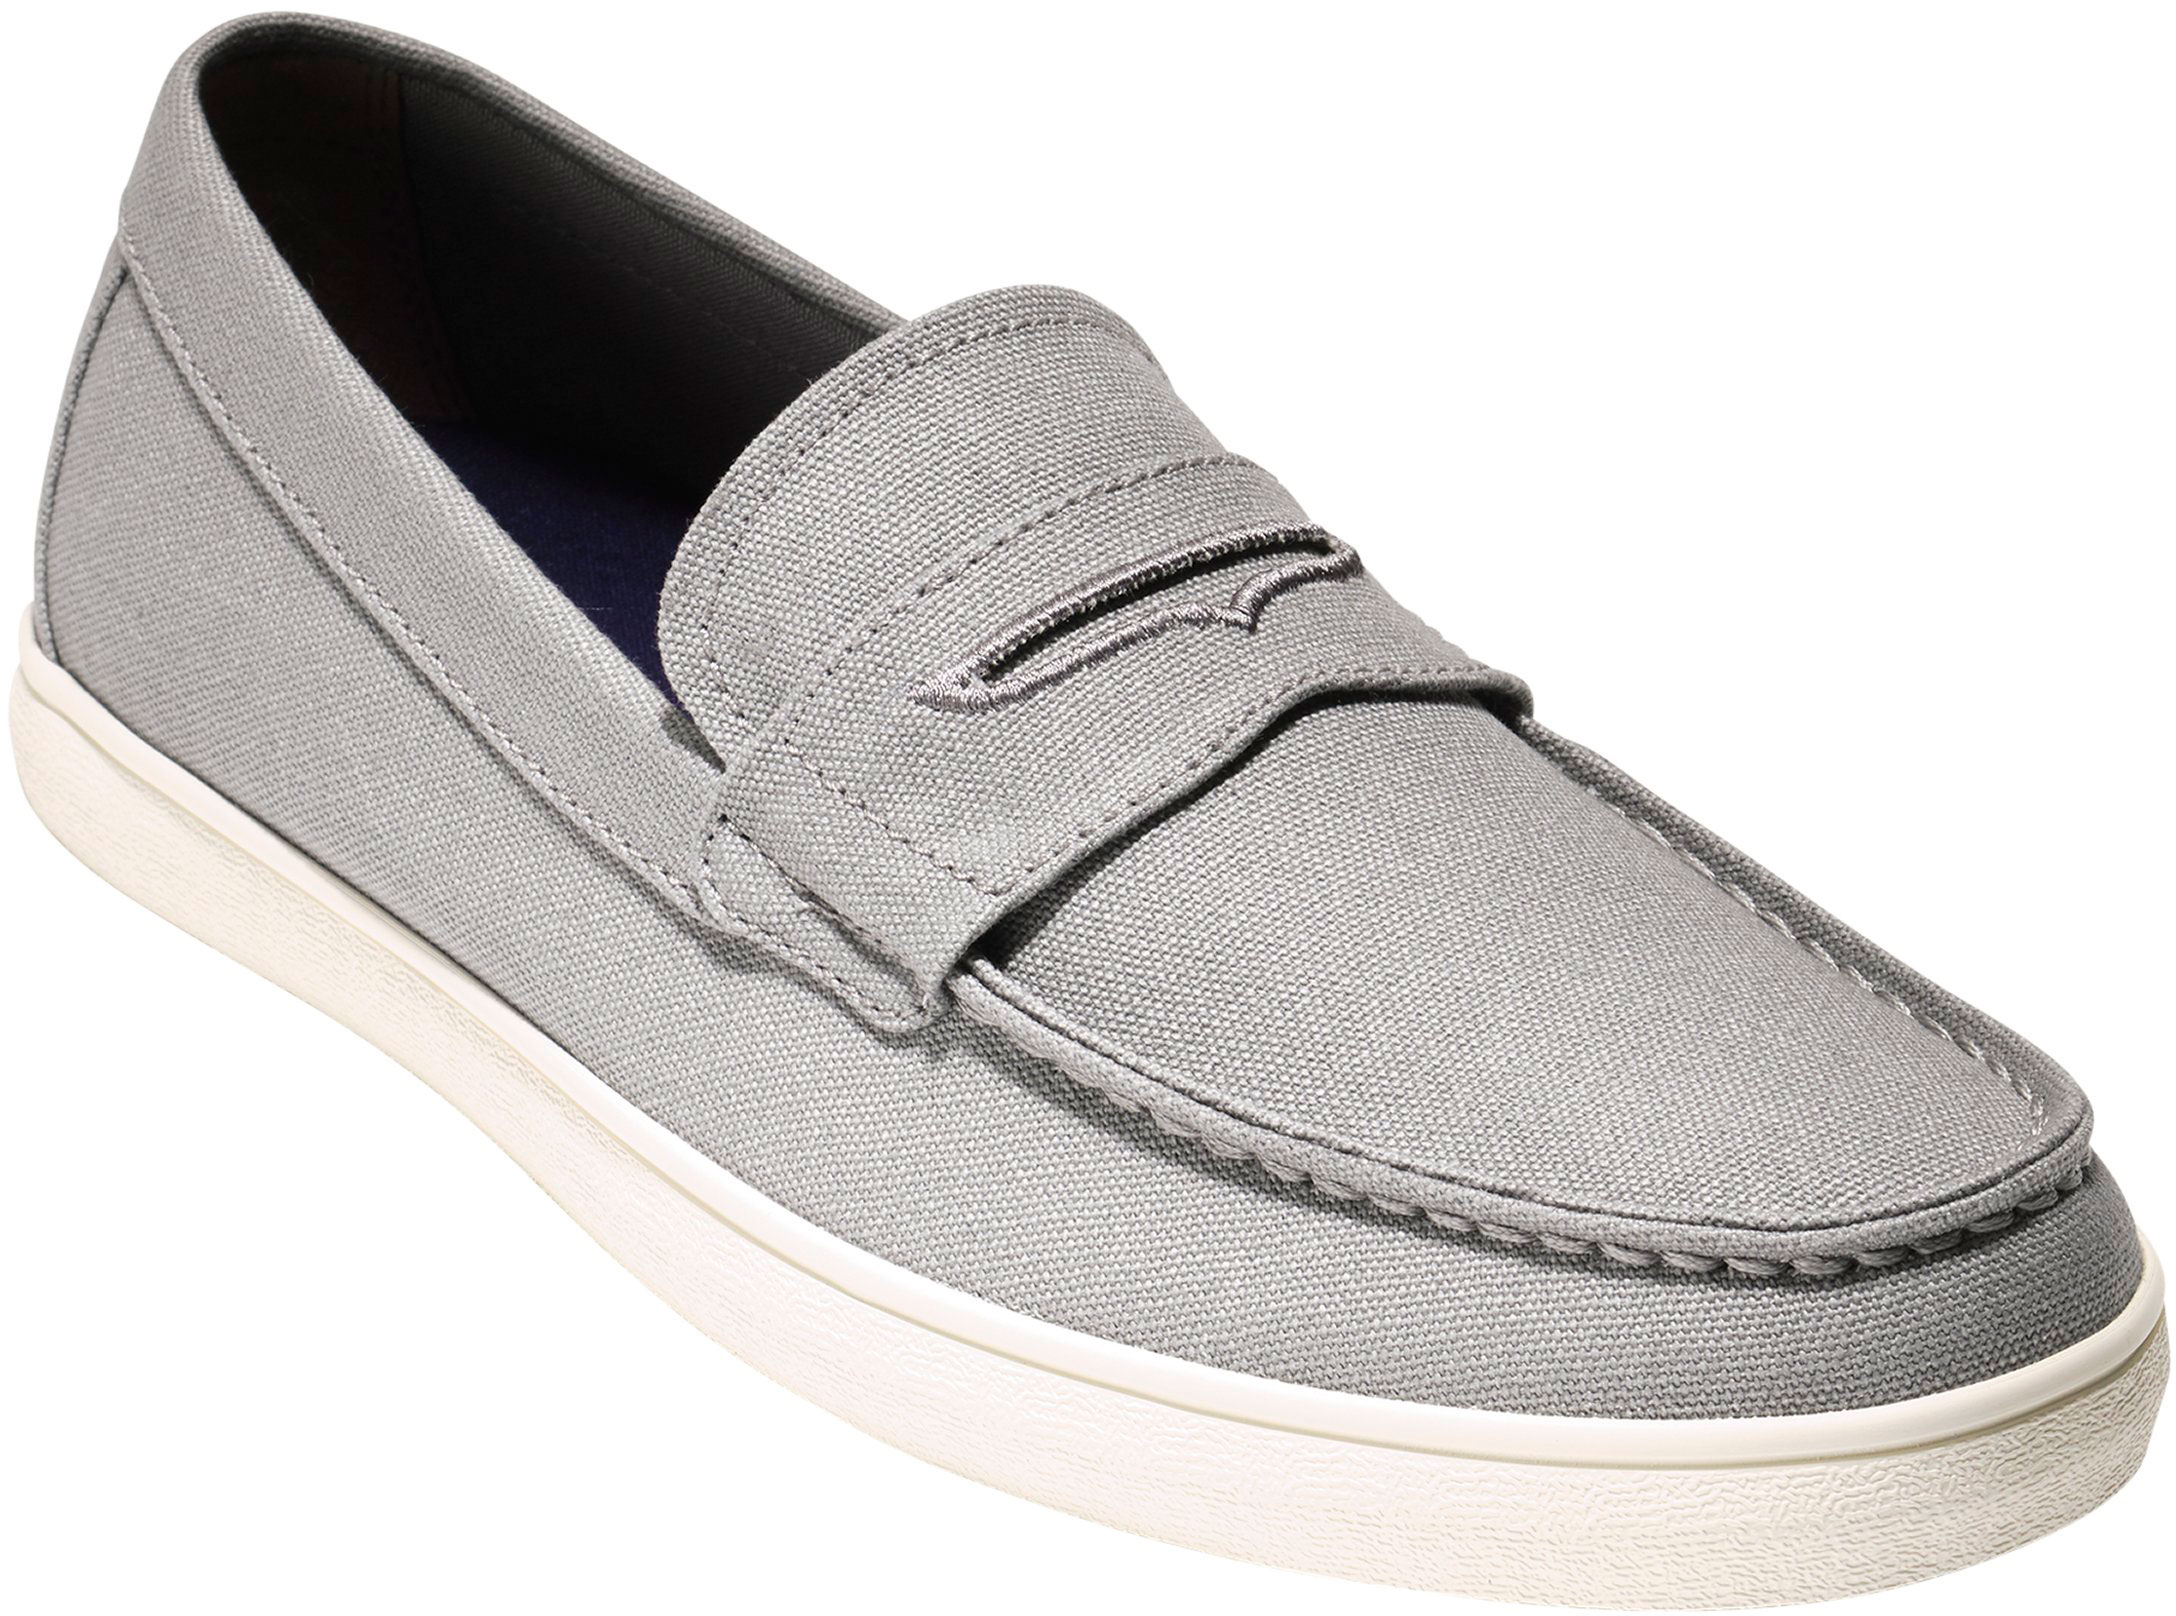 68f98d8d086 ... Cole Haan Men s Hyannis Penny Loafer II C25738 Ironstone Canvas ·  https   www.theshoemart.com product images images COL